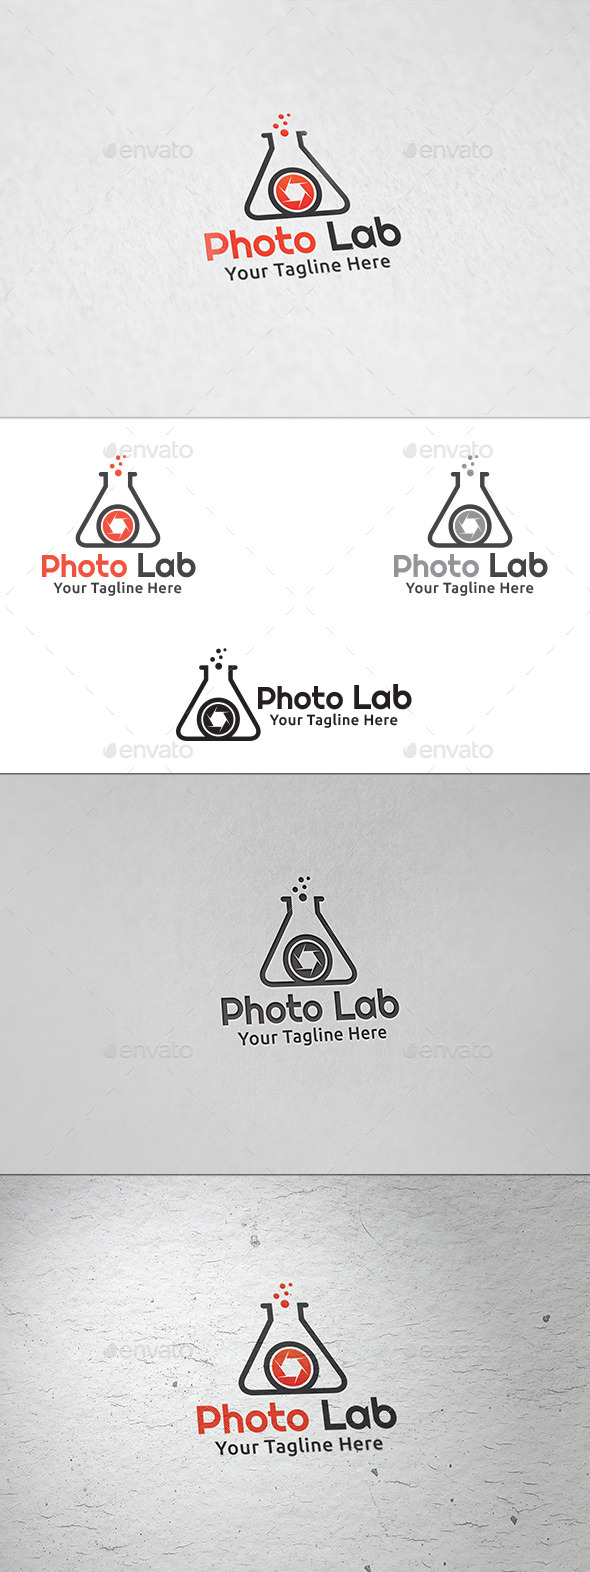 GraphicRiver Photo Lab Logo Template 8899254